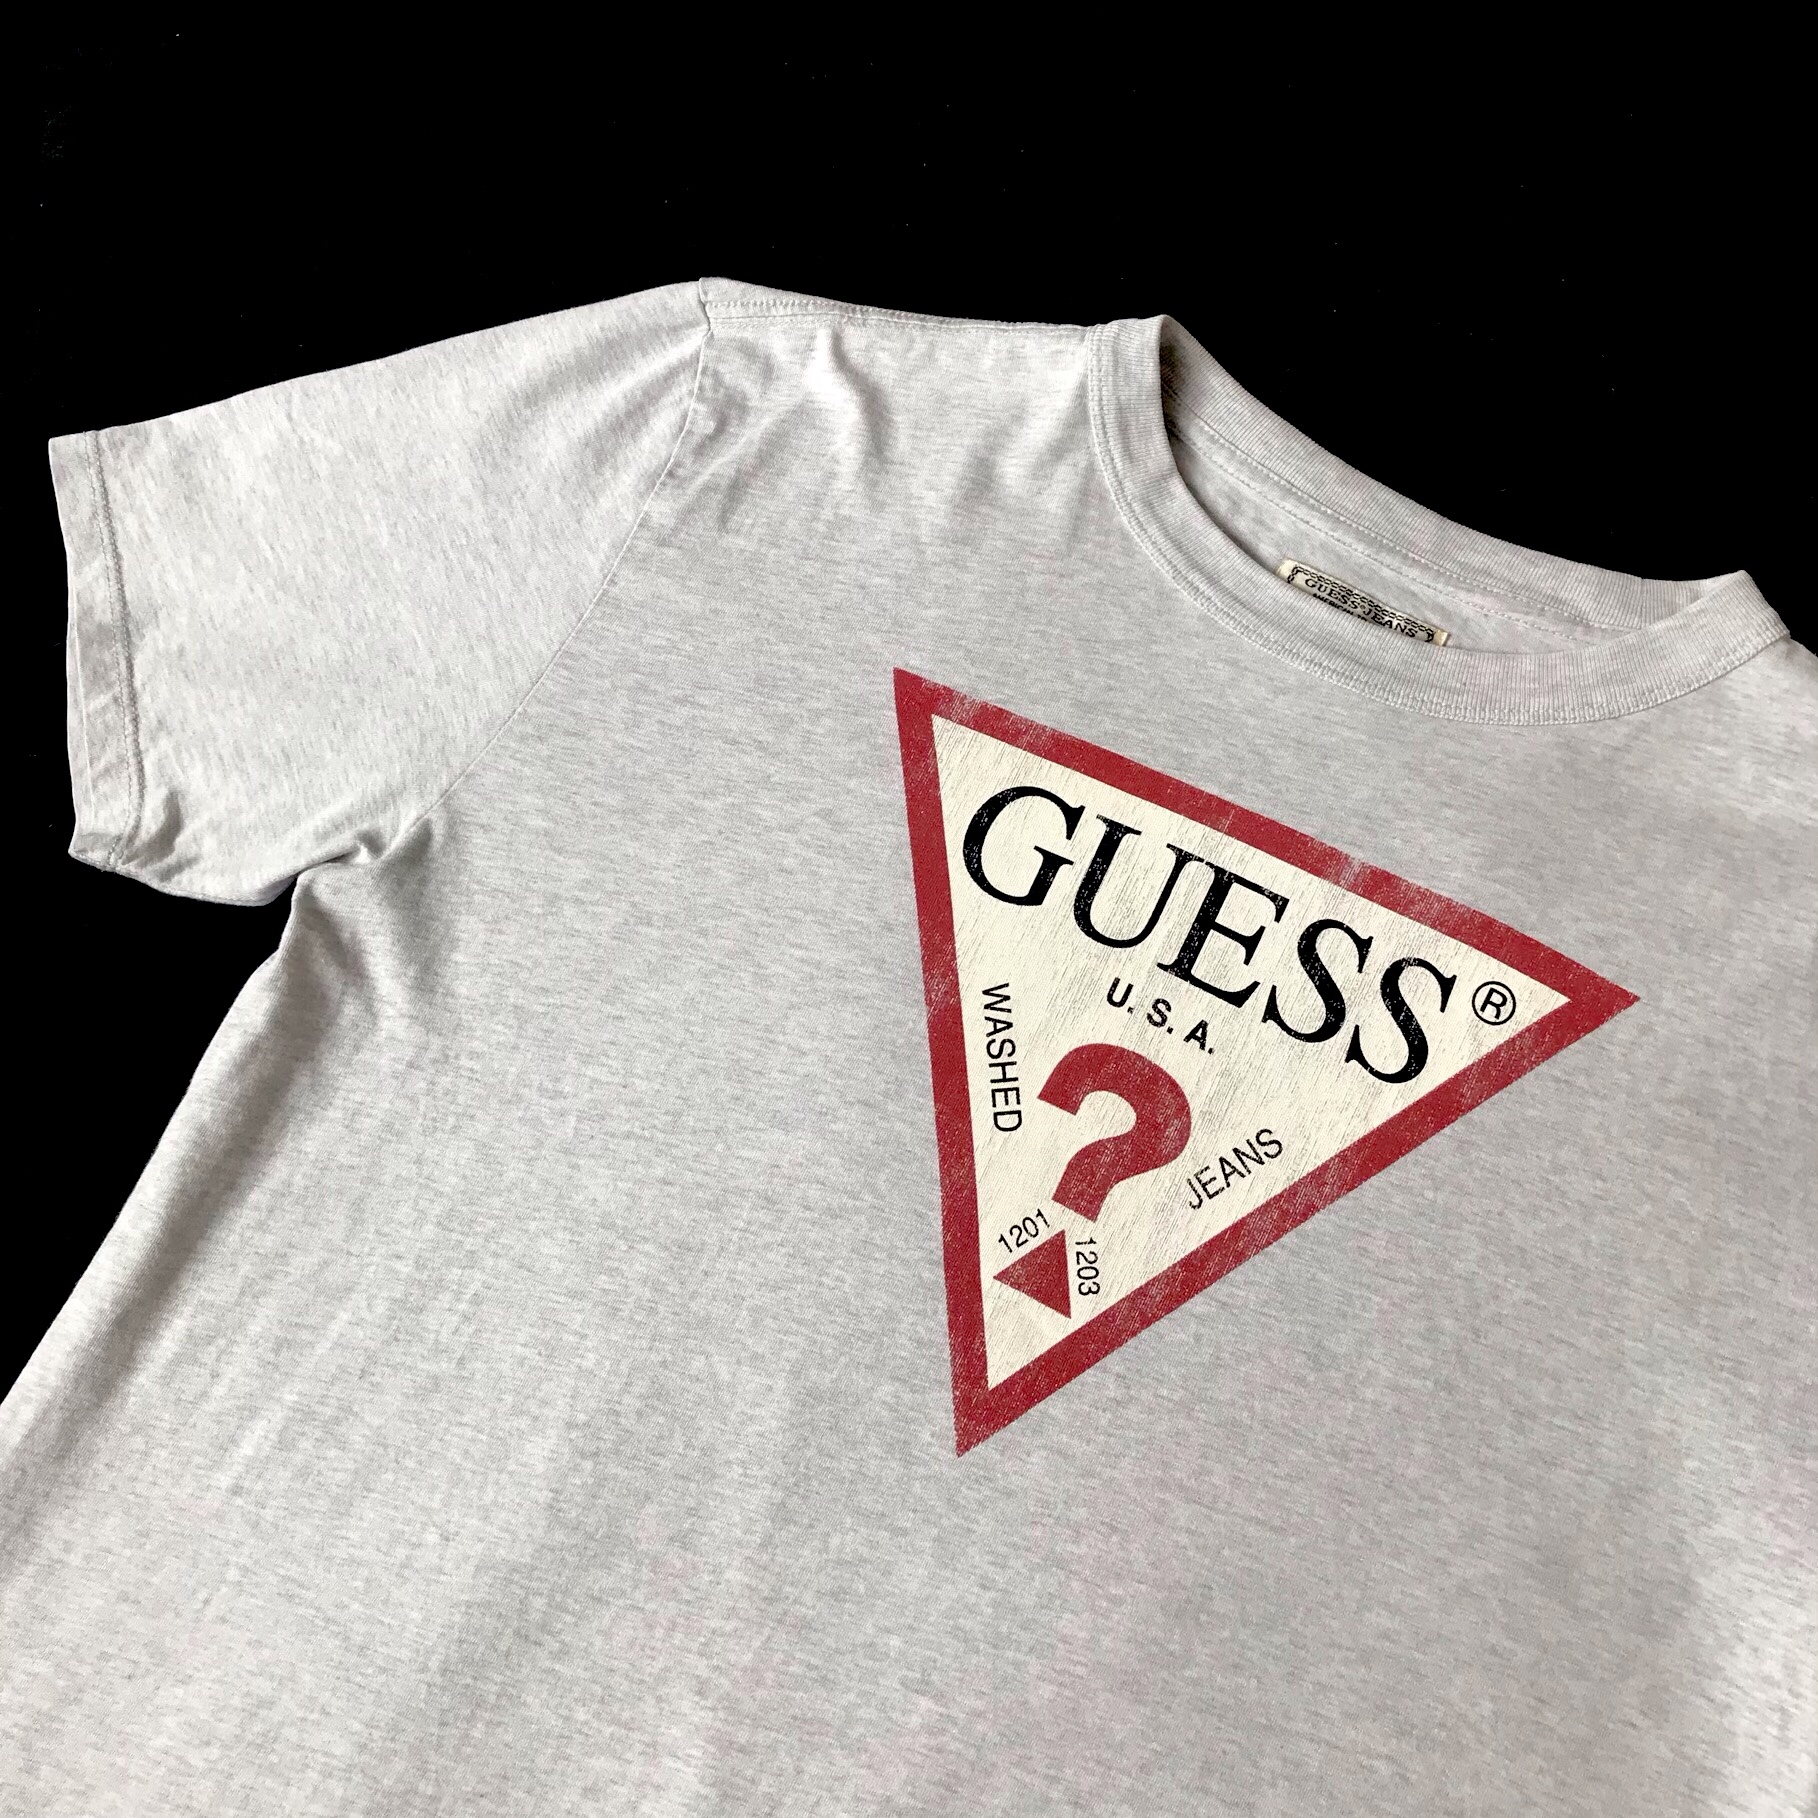 Vintage guess jeans t shirt size small but fits Depop